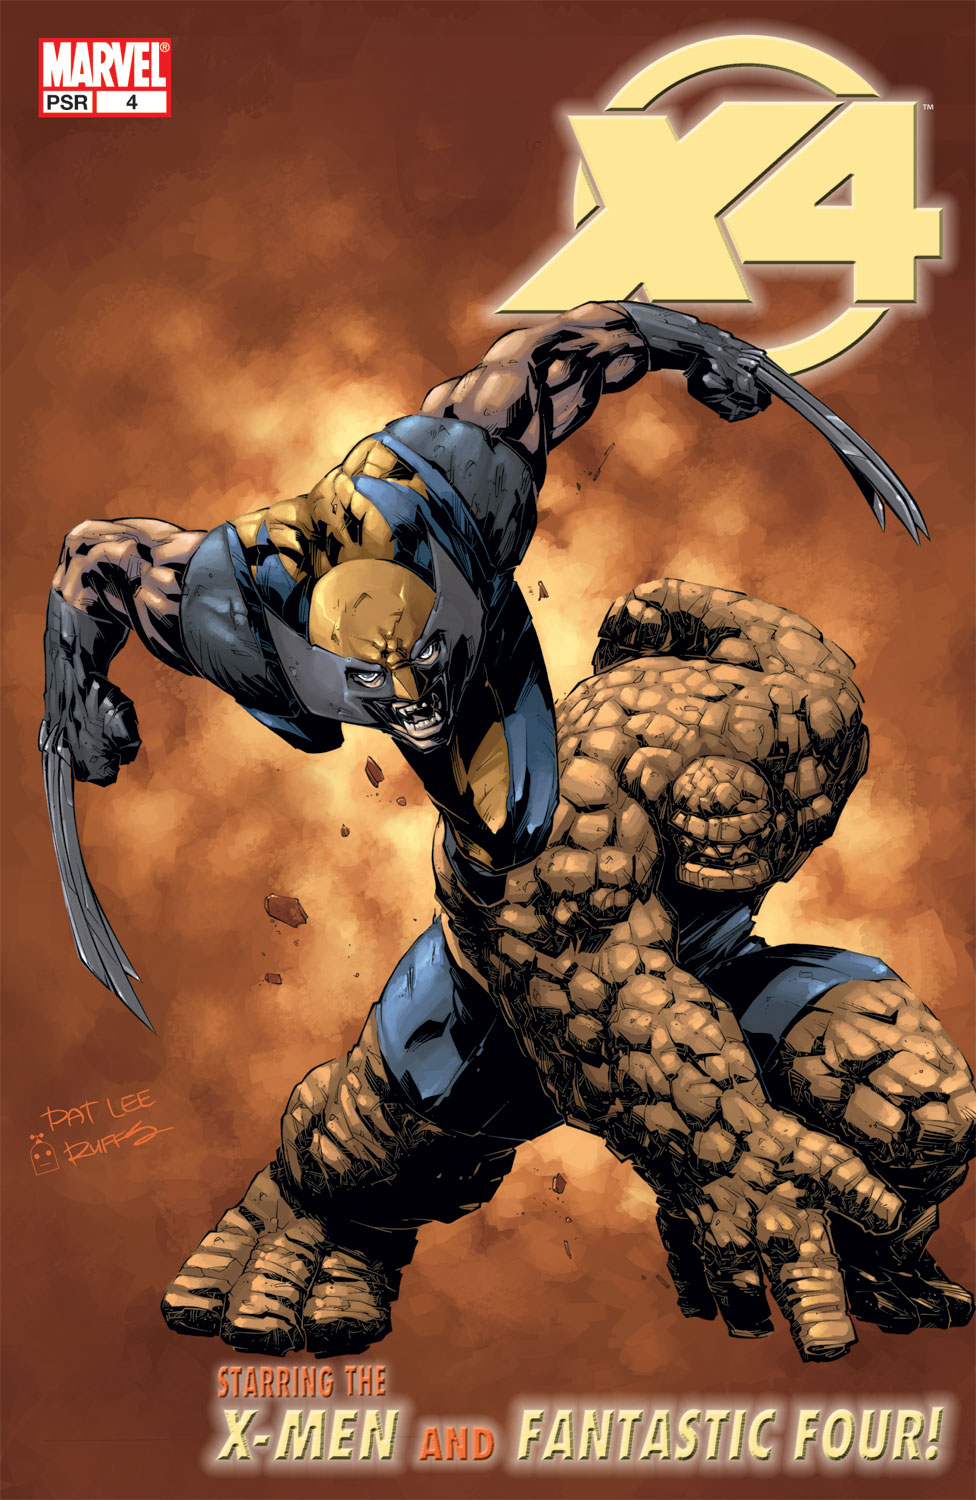 X-Men/Fantastic Four (2004) #4